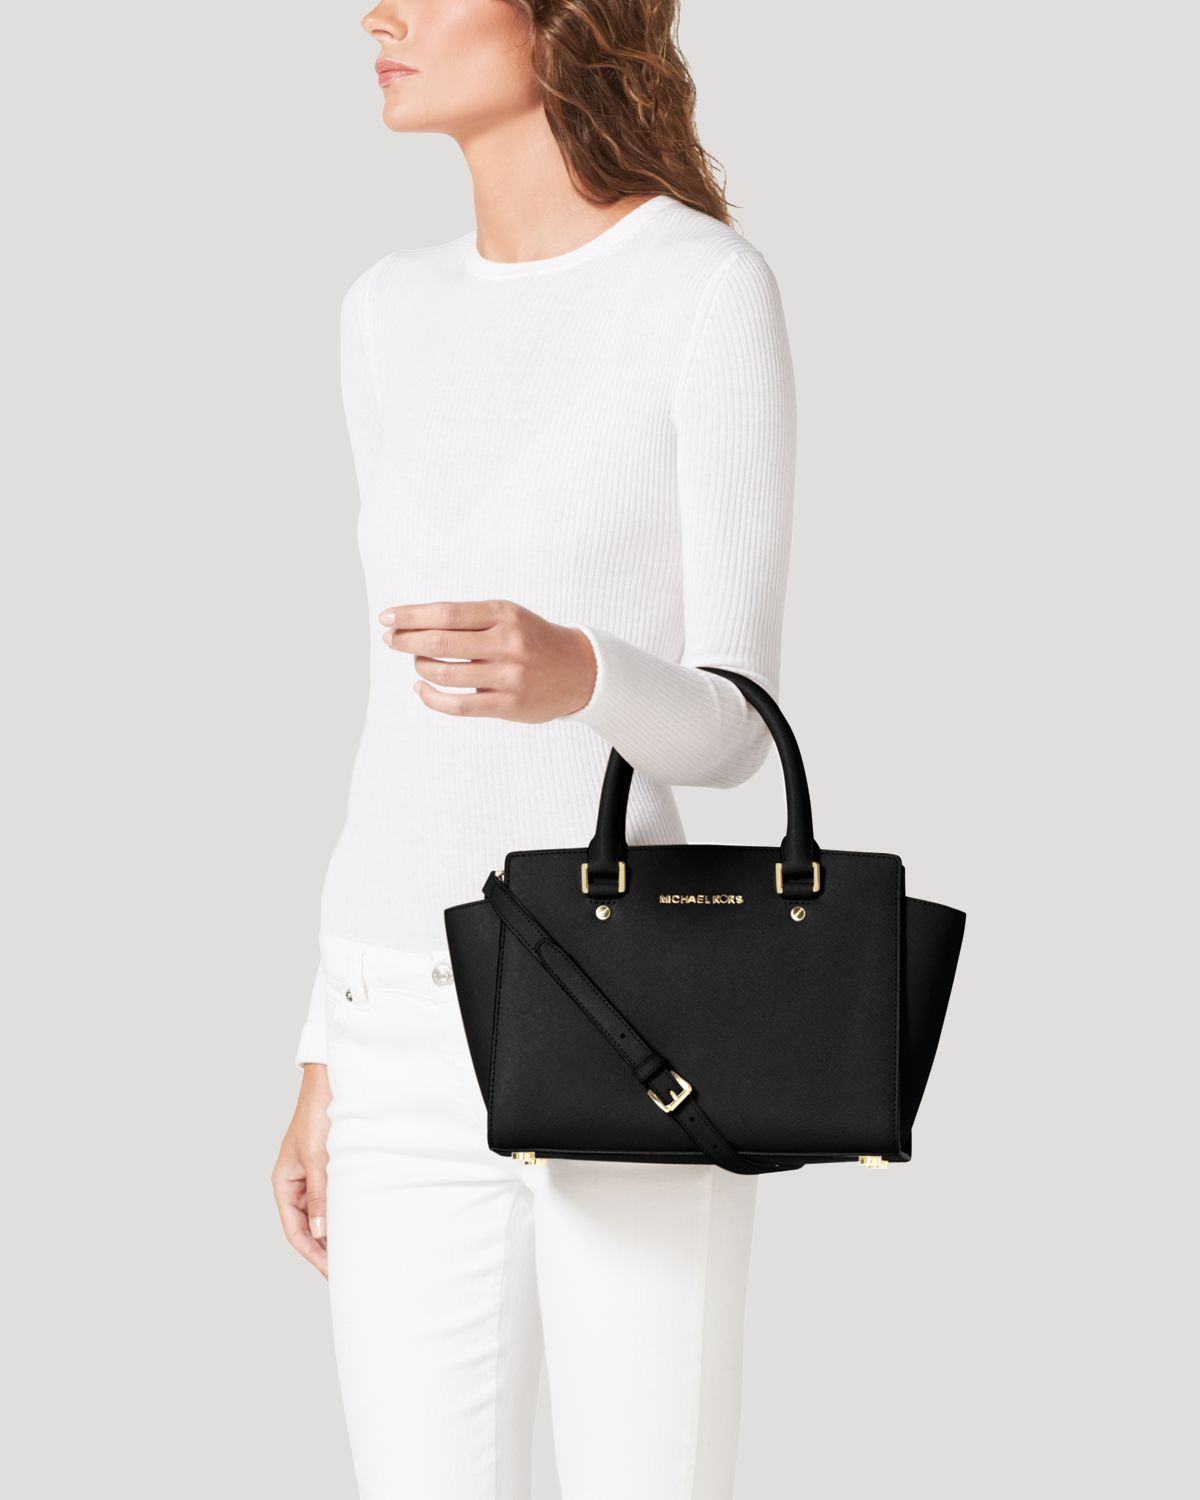 4e64947dbfdc Gallery. Previously sold at: Bloomingdale's · Women's Michael By Michael  Kors Selma